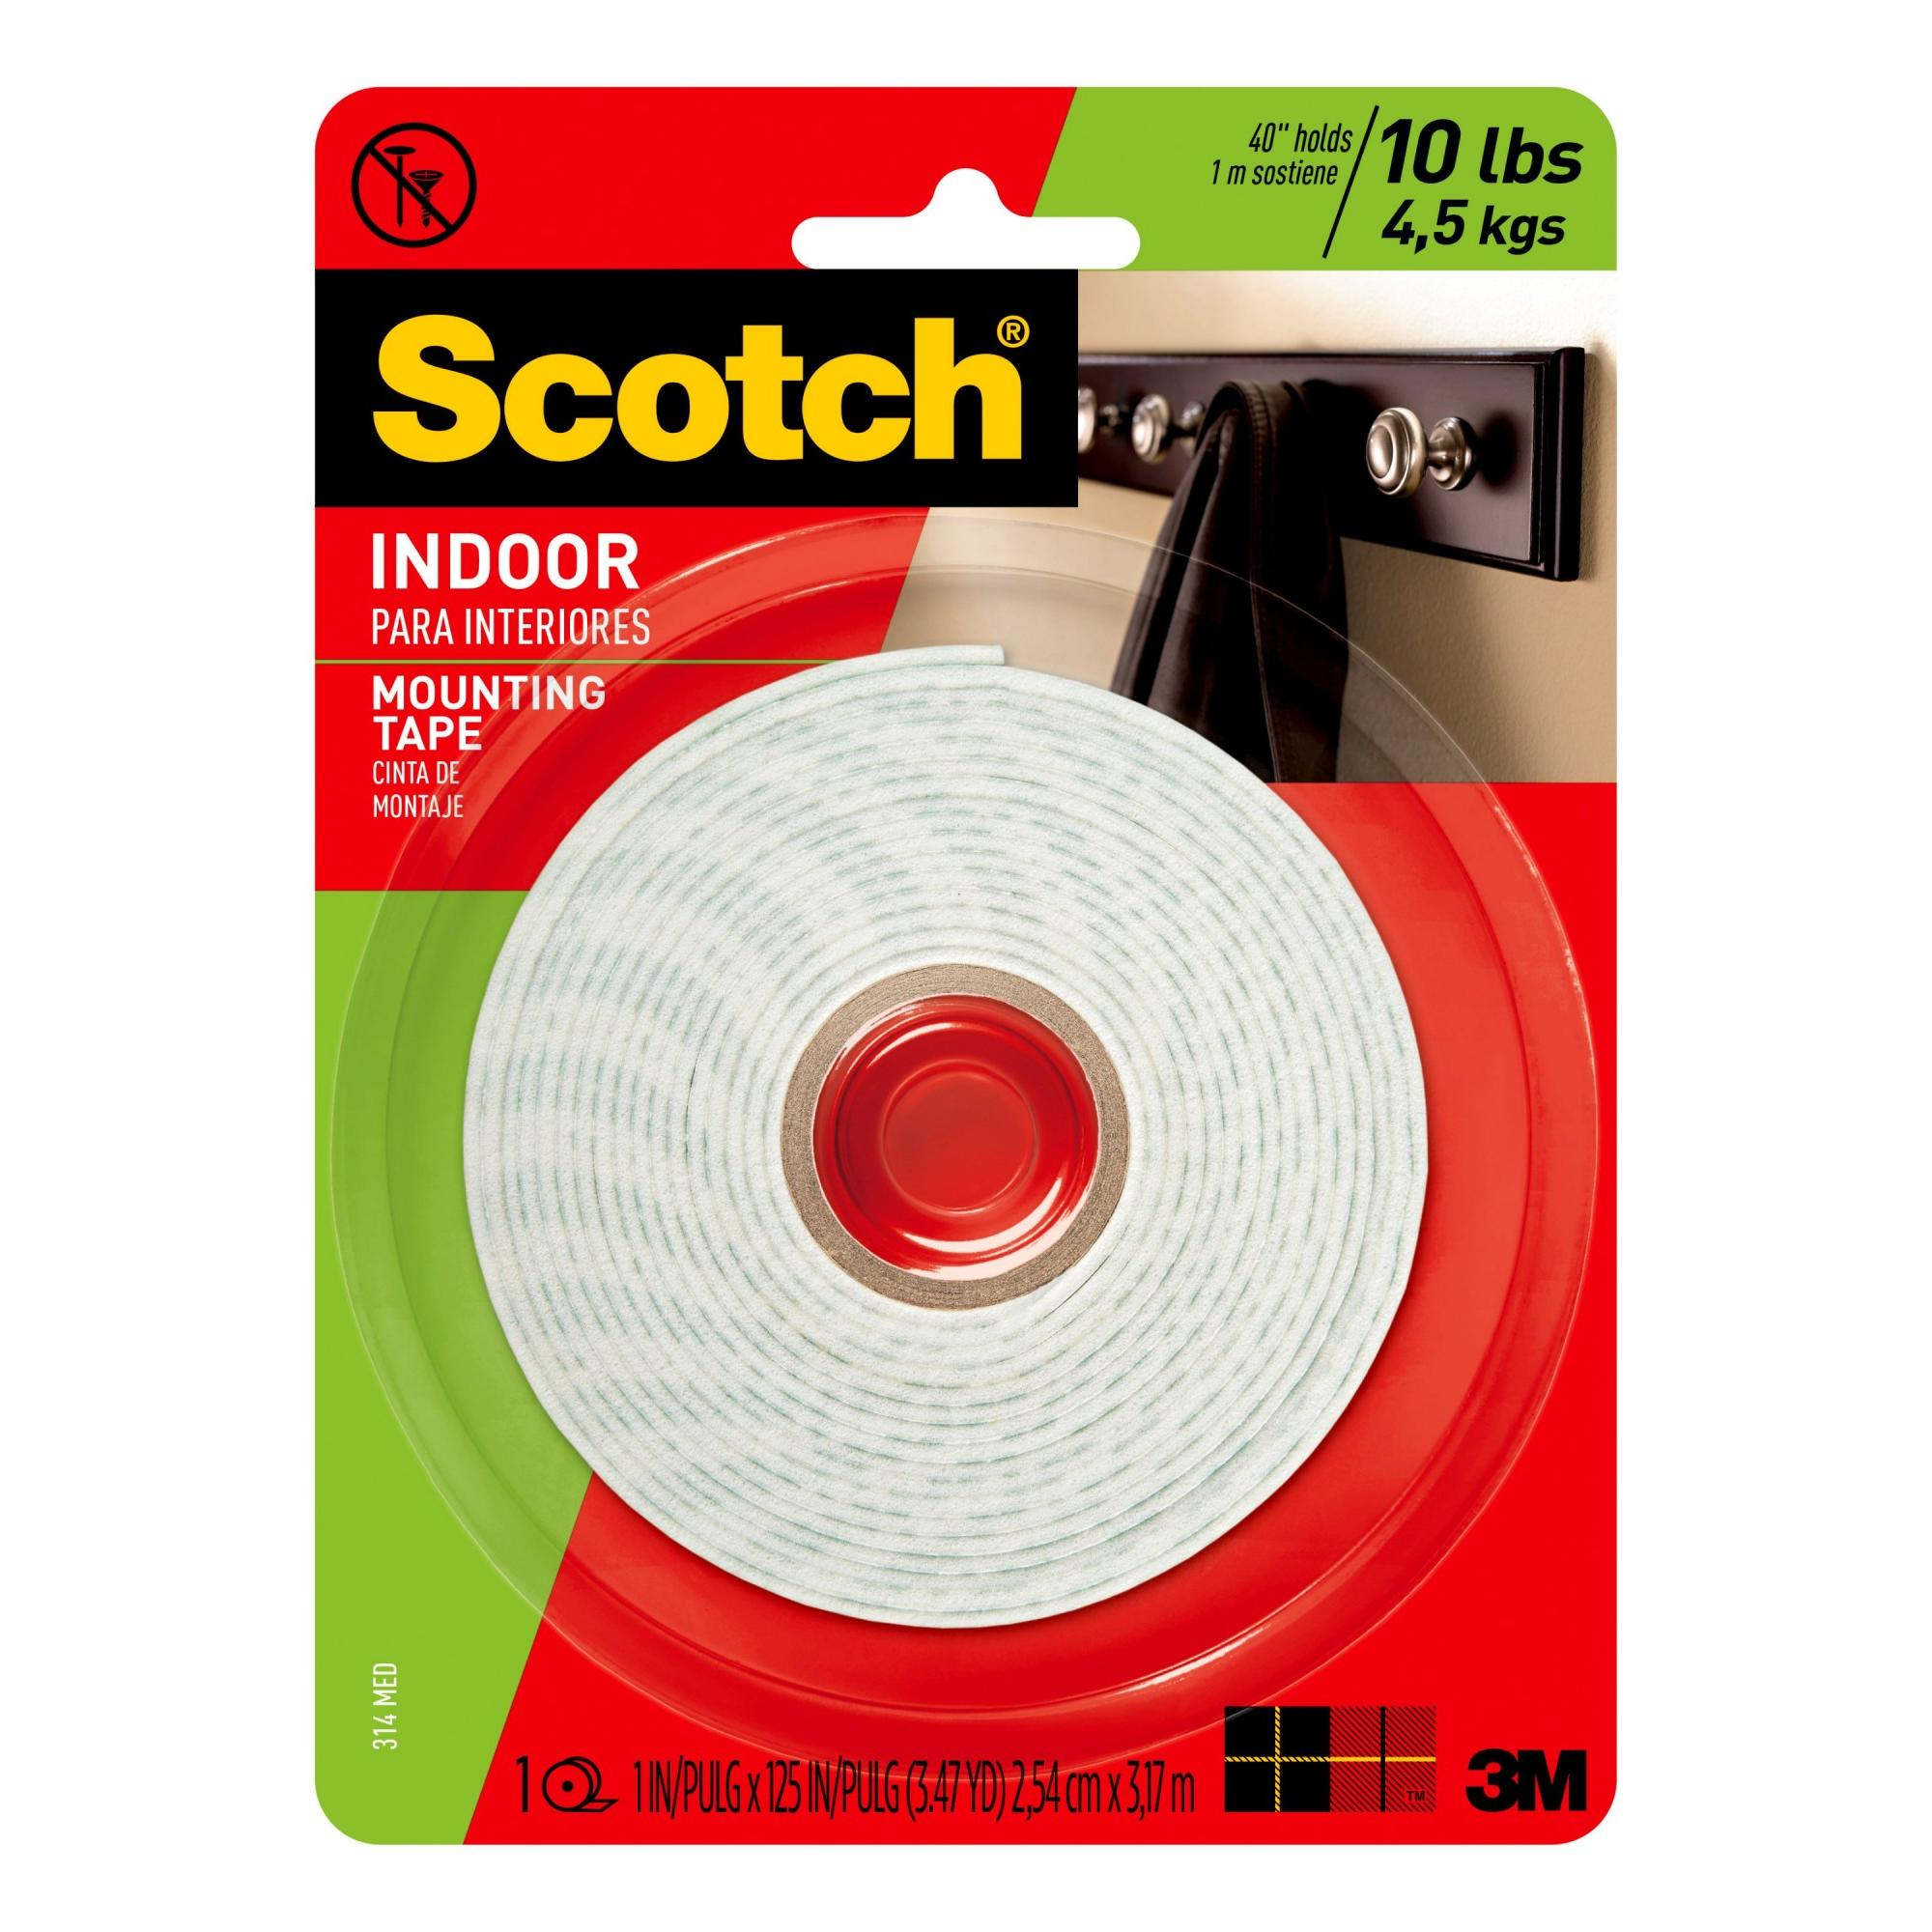 Scotch Indoor Mounting Tape, 1 in. X 125 in., 1 Roll/Pack